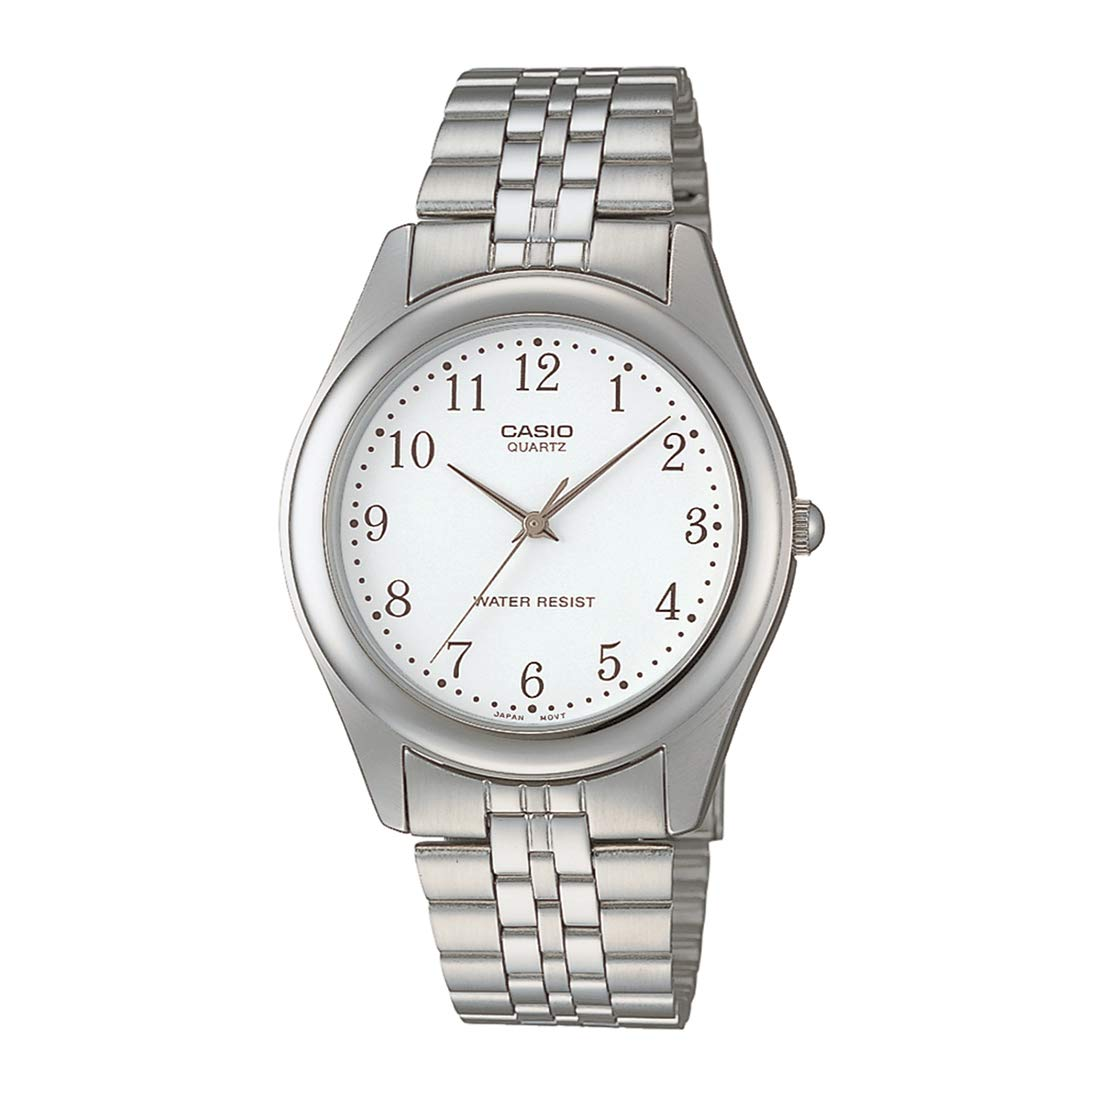 Casio Others Analog White Dial Unisex Watch - MTP-1129A-7B (A407)